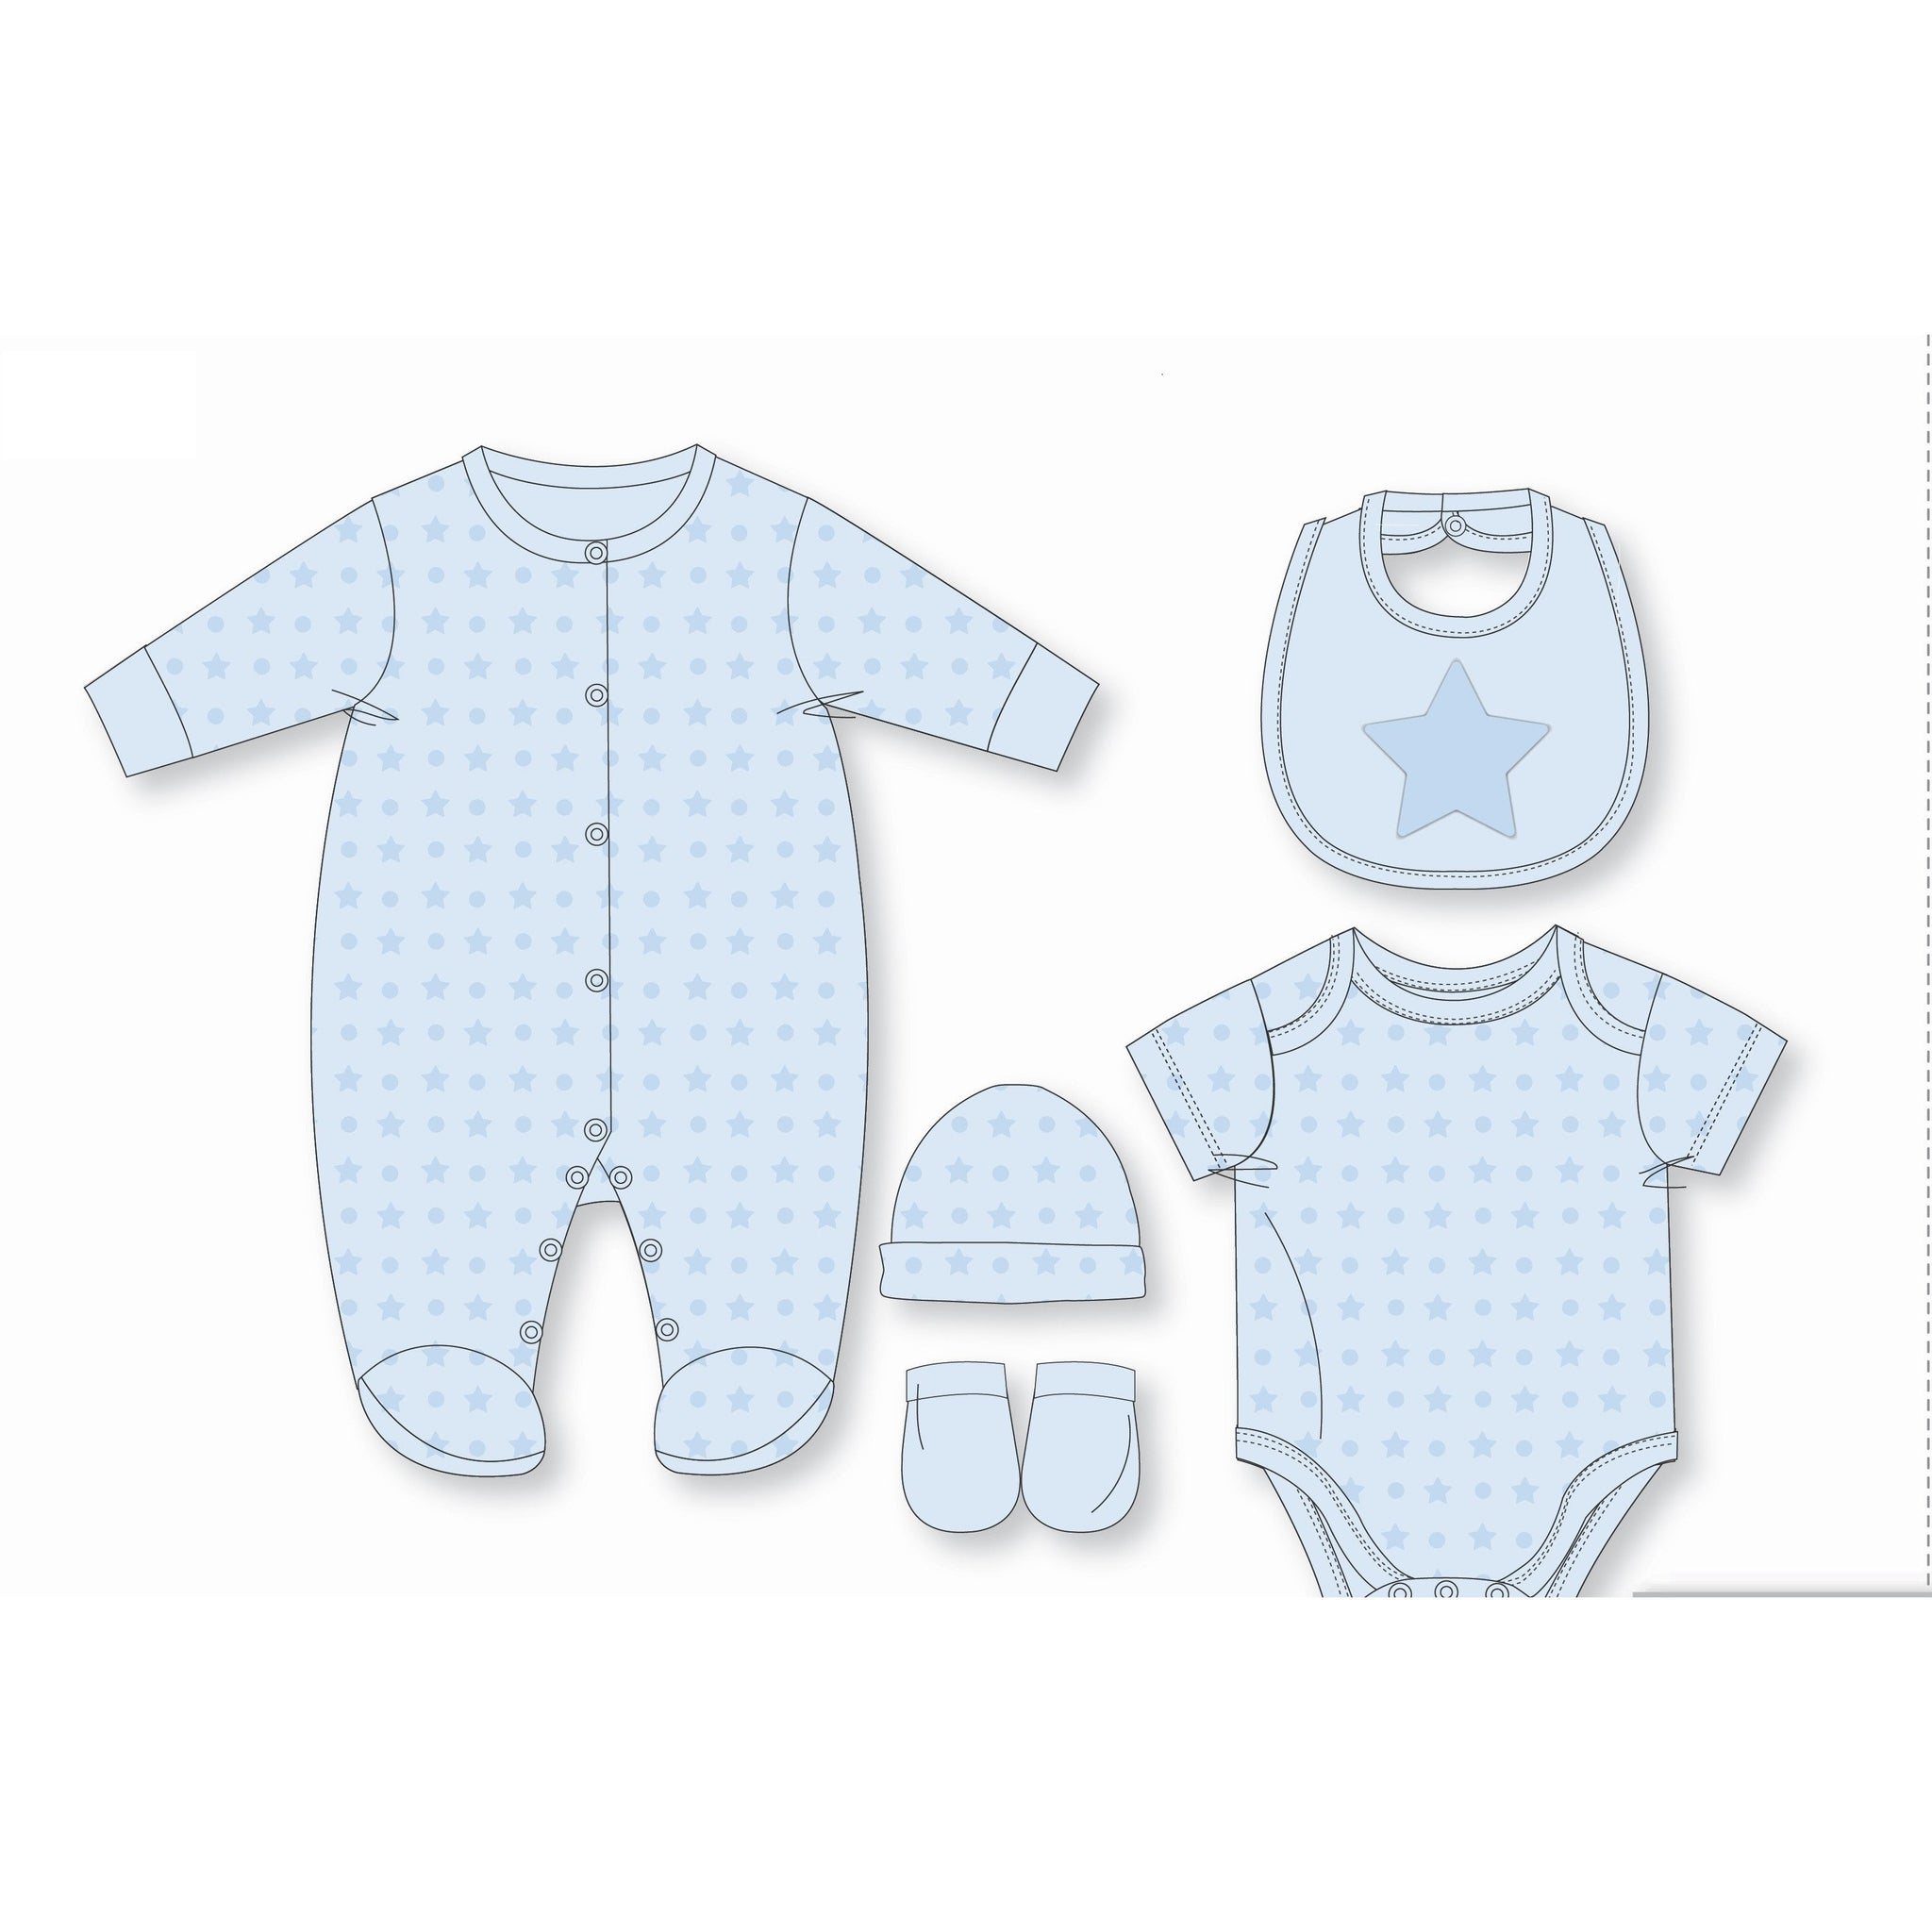 ROCK A BYE BABY : 5 Piece for Boy